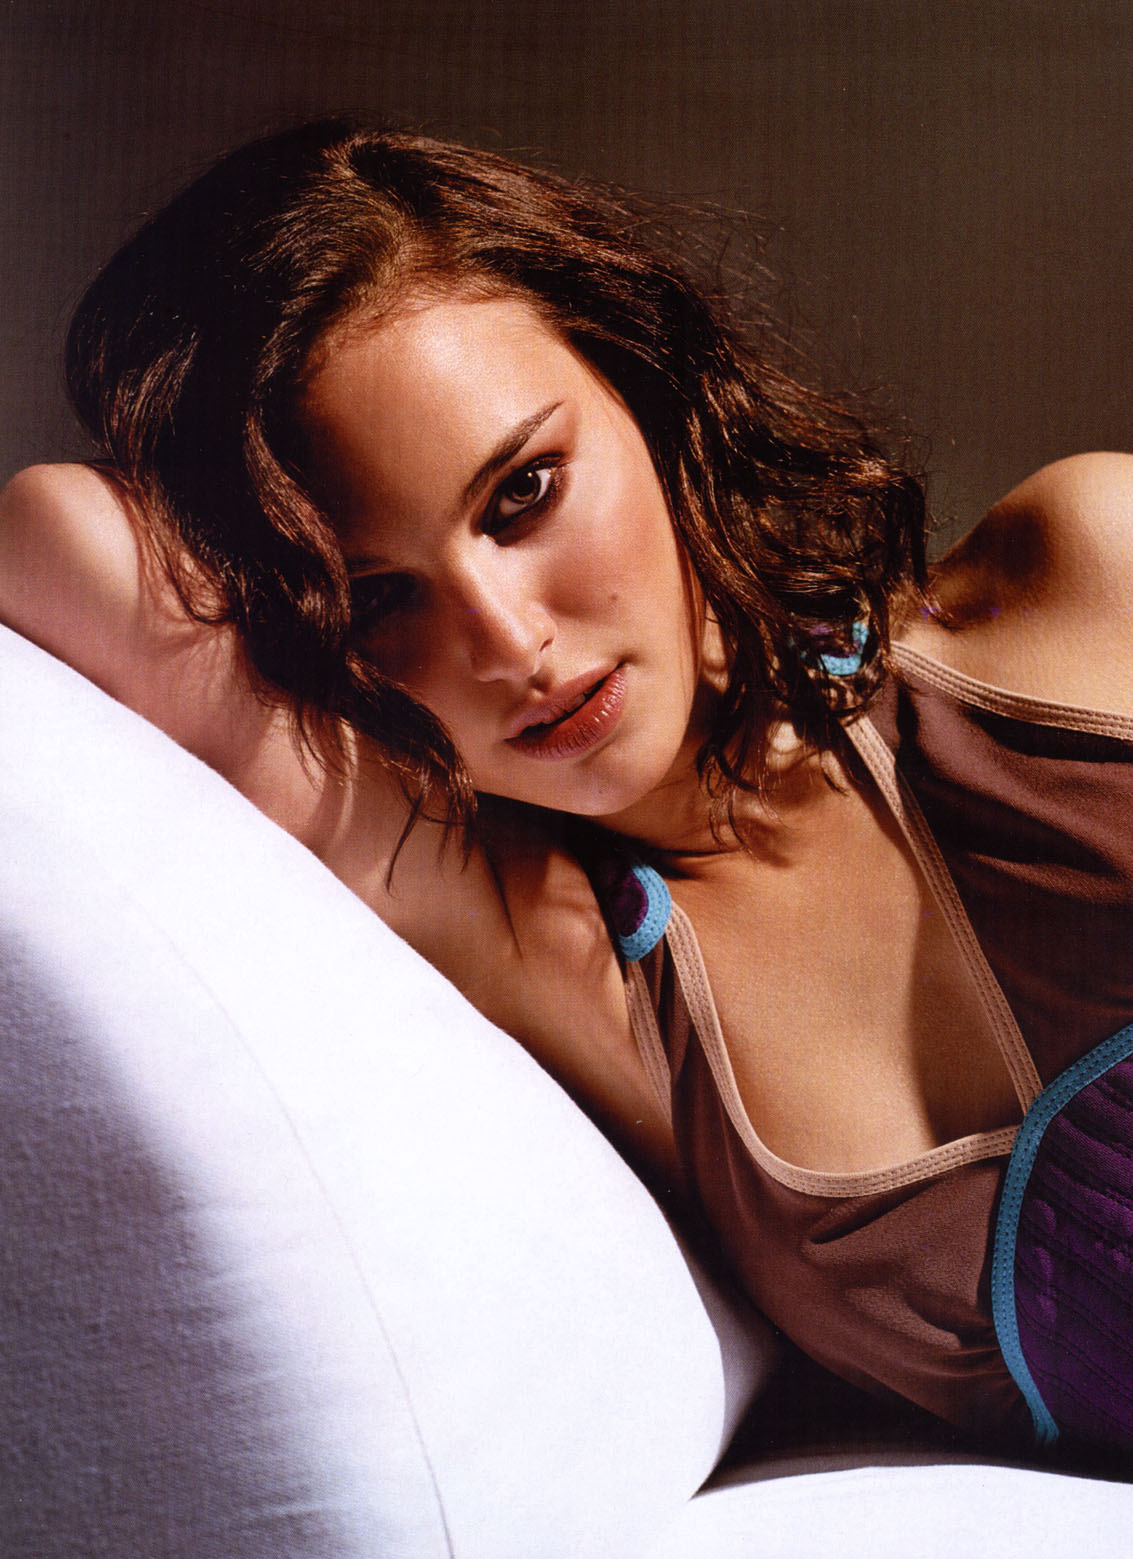 Natalie Portman photo #2399